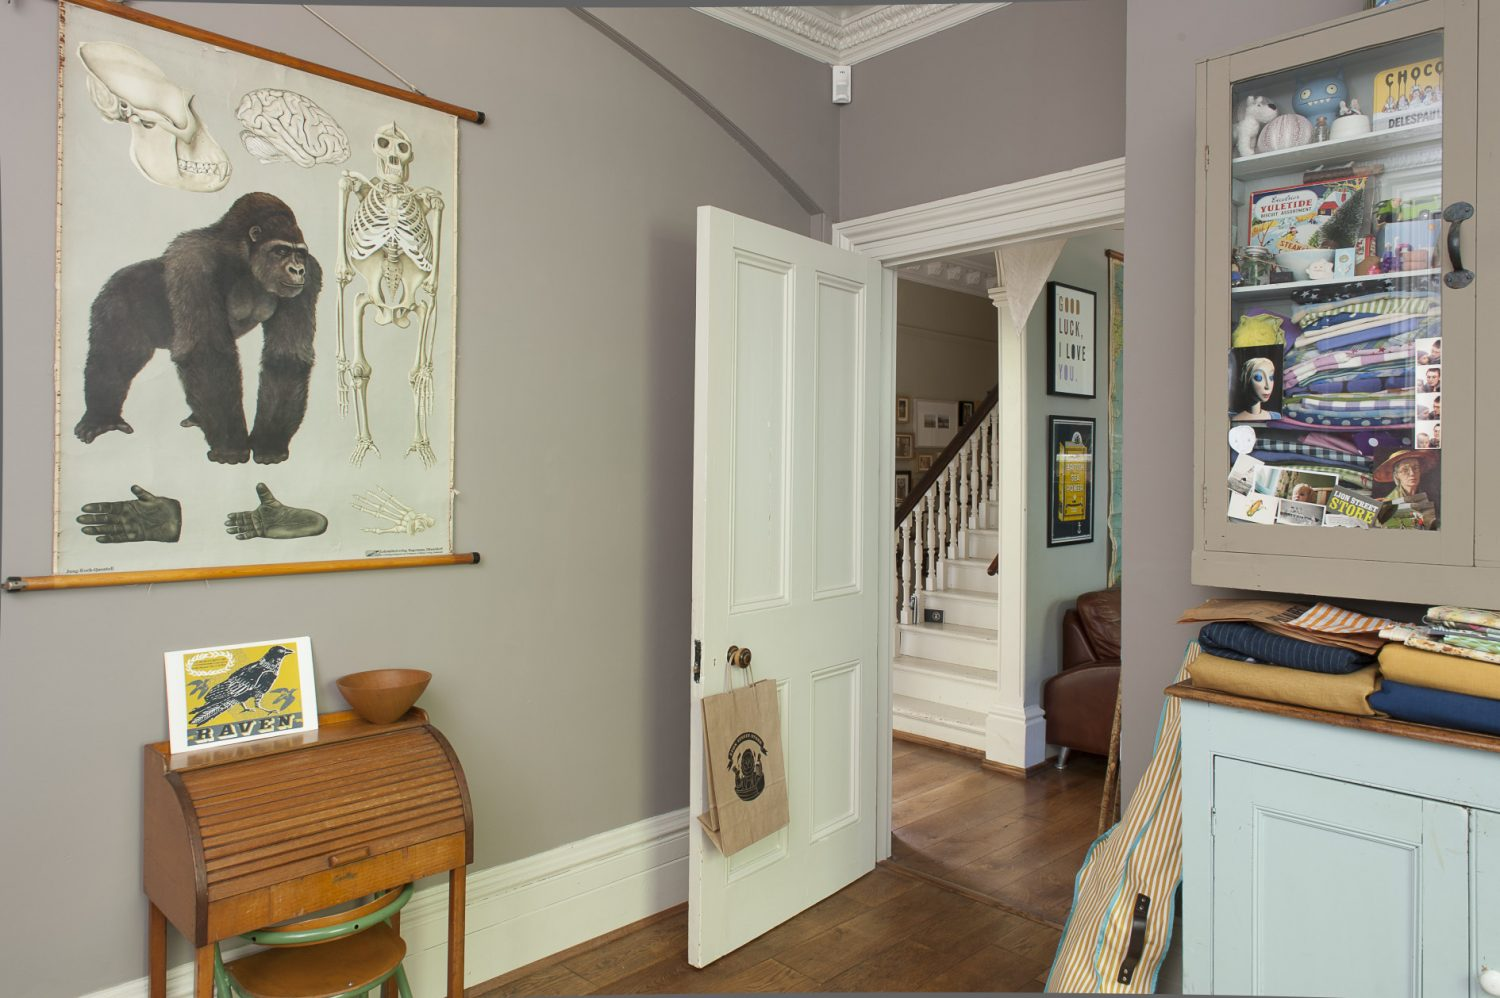 Just off the entrance hall, the study provides a peaceful space for Sarah to work in